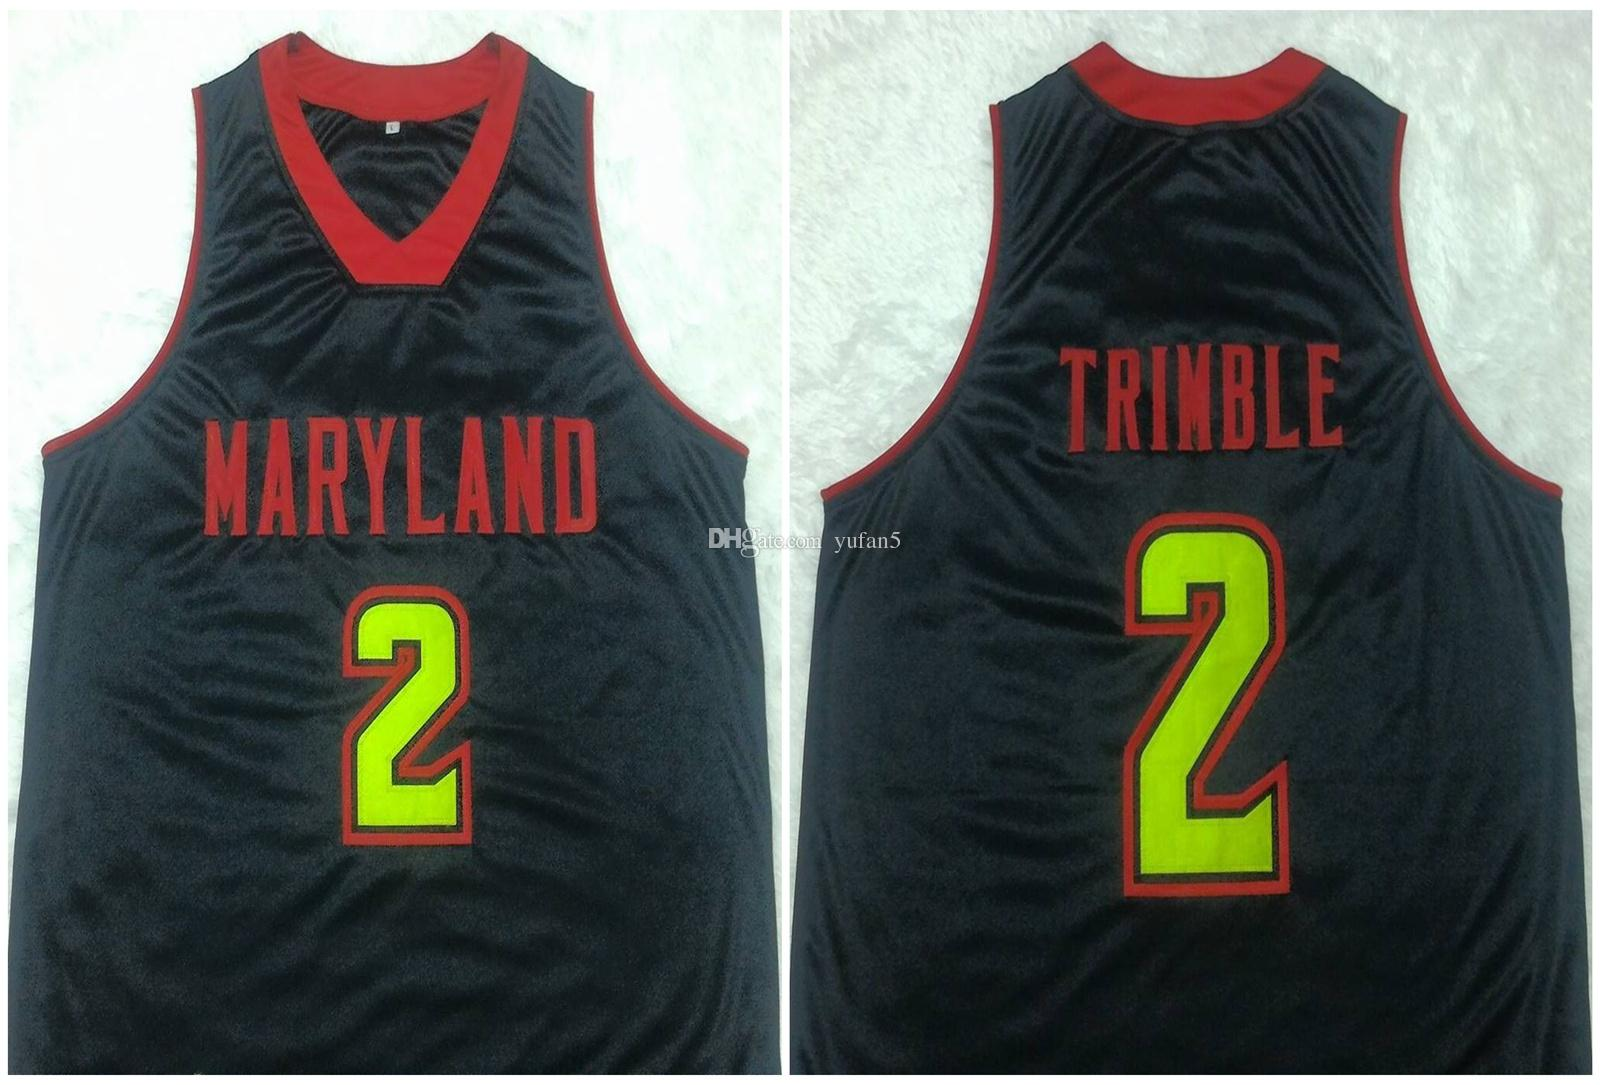 46e810d89ff 2019 Melo Trimble  2 Maryland Terrapins College Retro Basketball Jersey  Mens Stitched Custom Any Number Name Jerseys From Yufan5